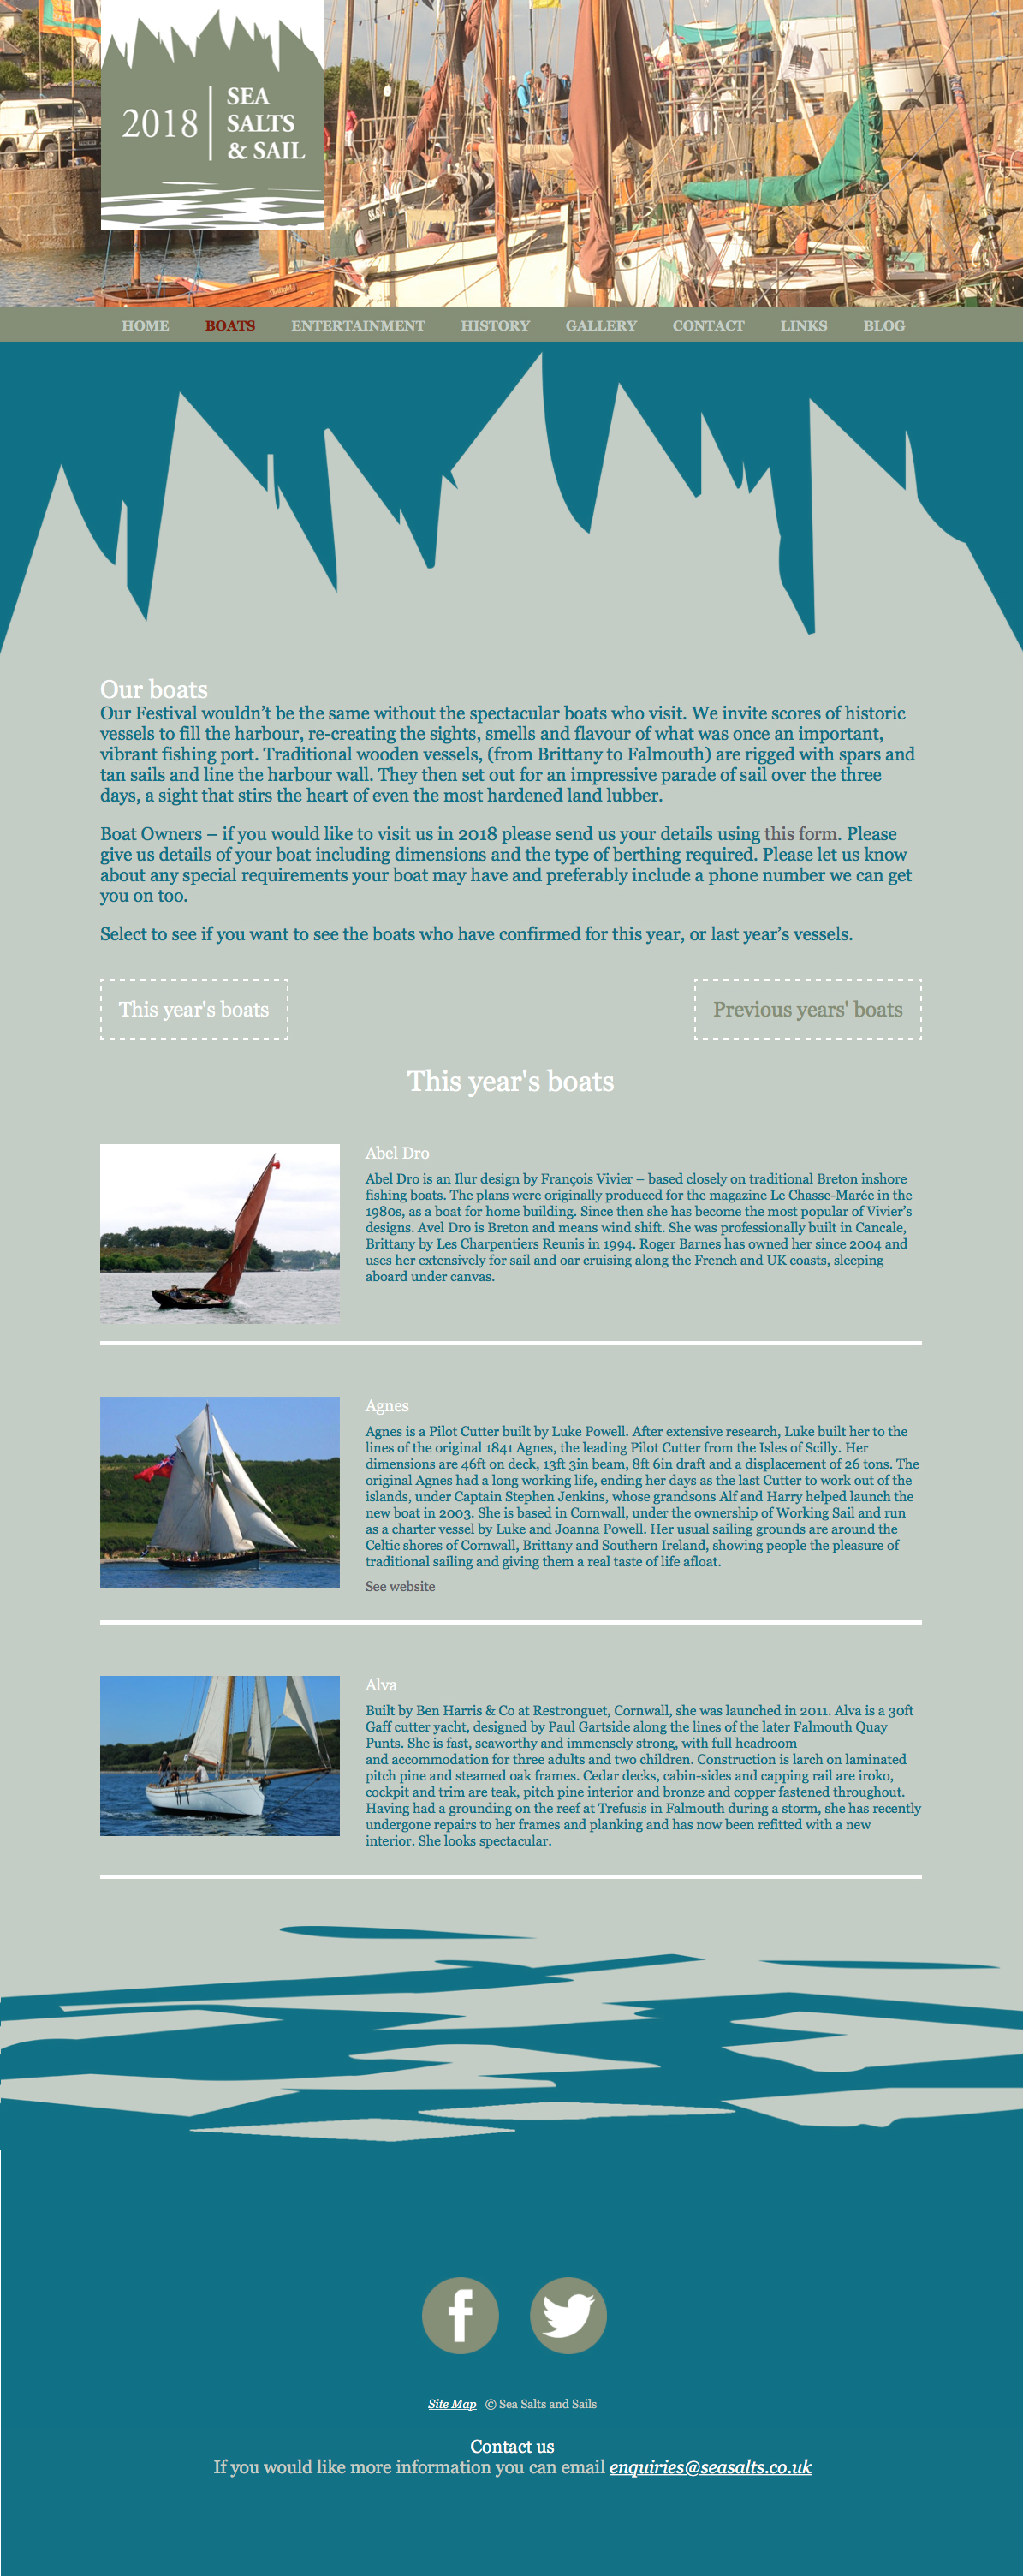 The Boats page from the website Pickle Design created for Mousehole festival Sea Salts and Sails